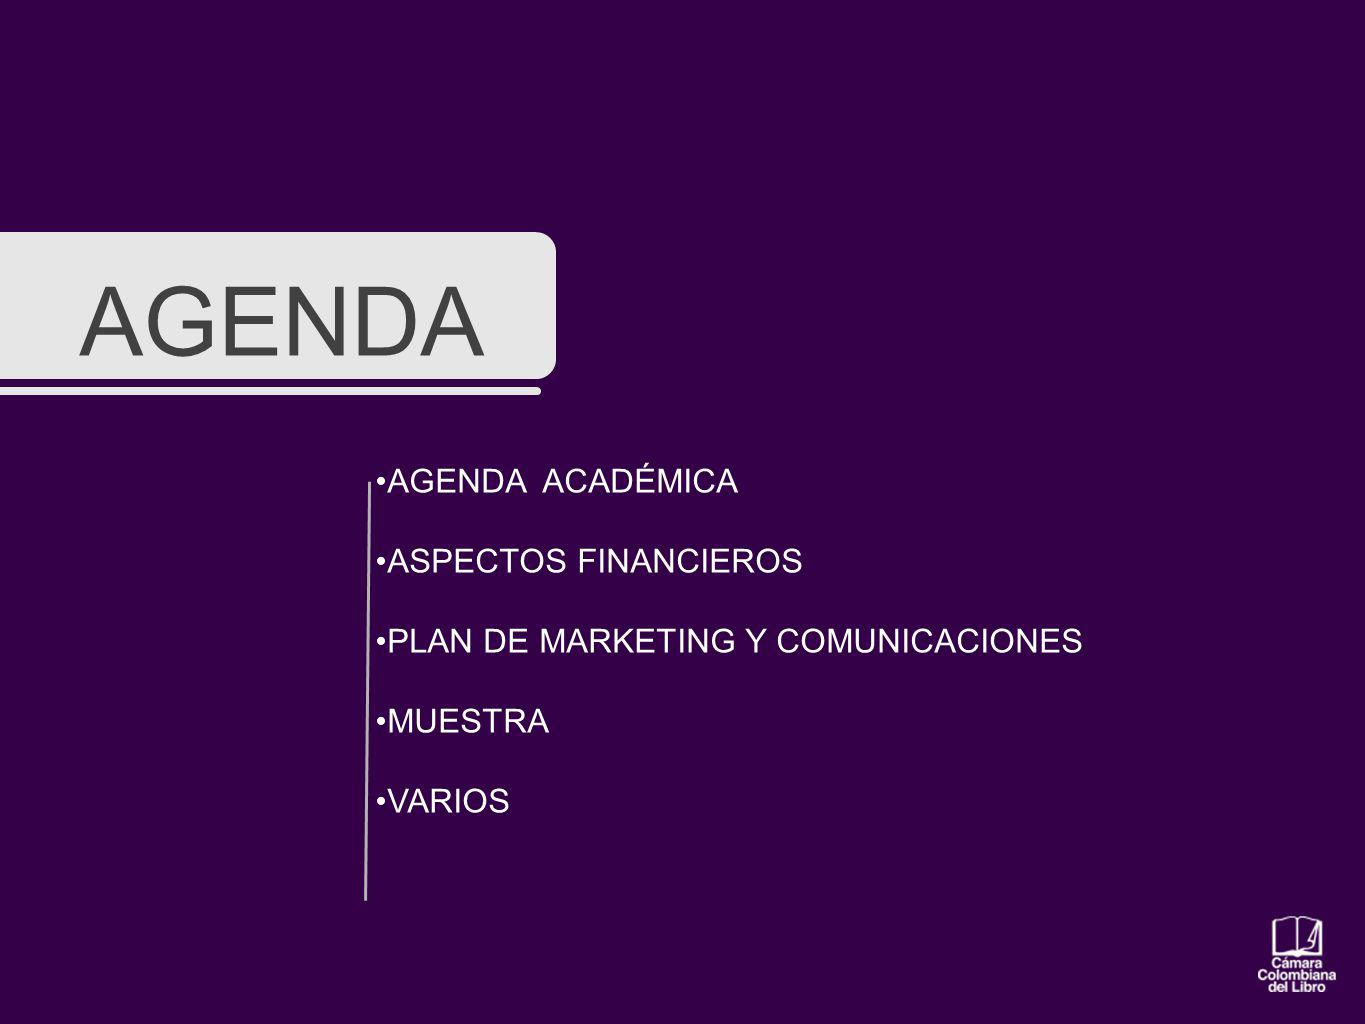 AGENDA AGENDA ACADÉMICA ASPECTOS FINANCIEROS PLAN DE MARKETING Y COMUNICACIONES MUESTRA VARIOS